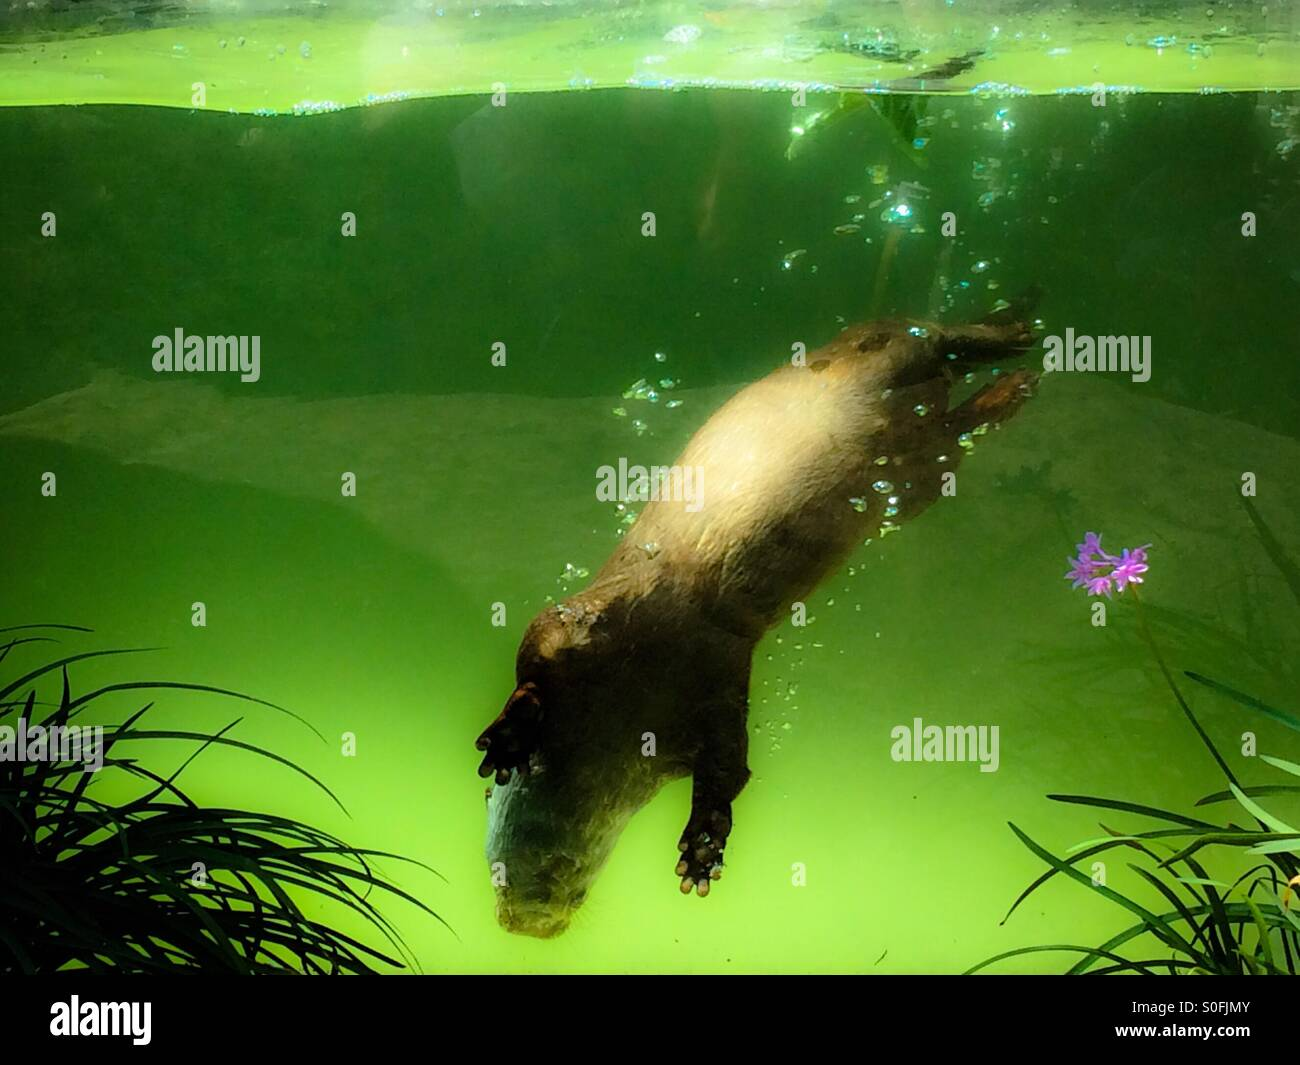 Asian small-clawed otter (Aonyx cinerea) - Stock Image